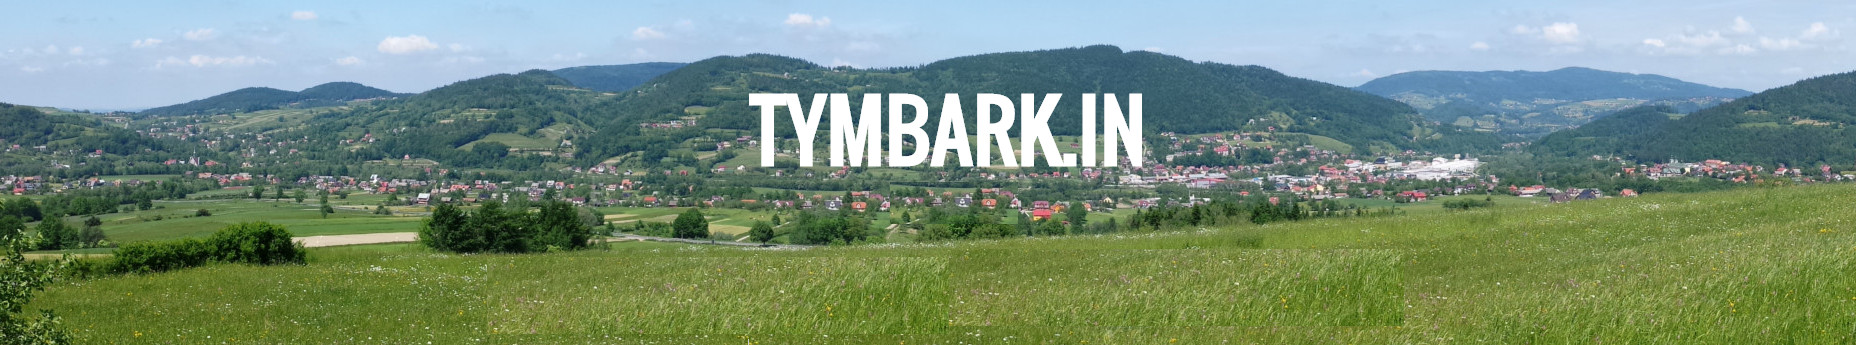 Image of Tymbark